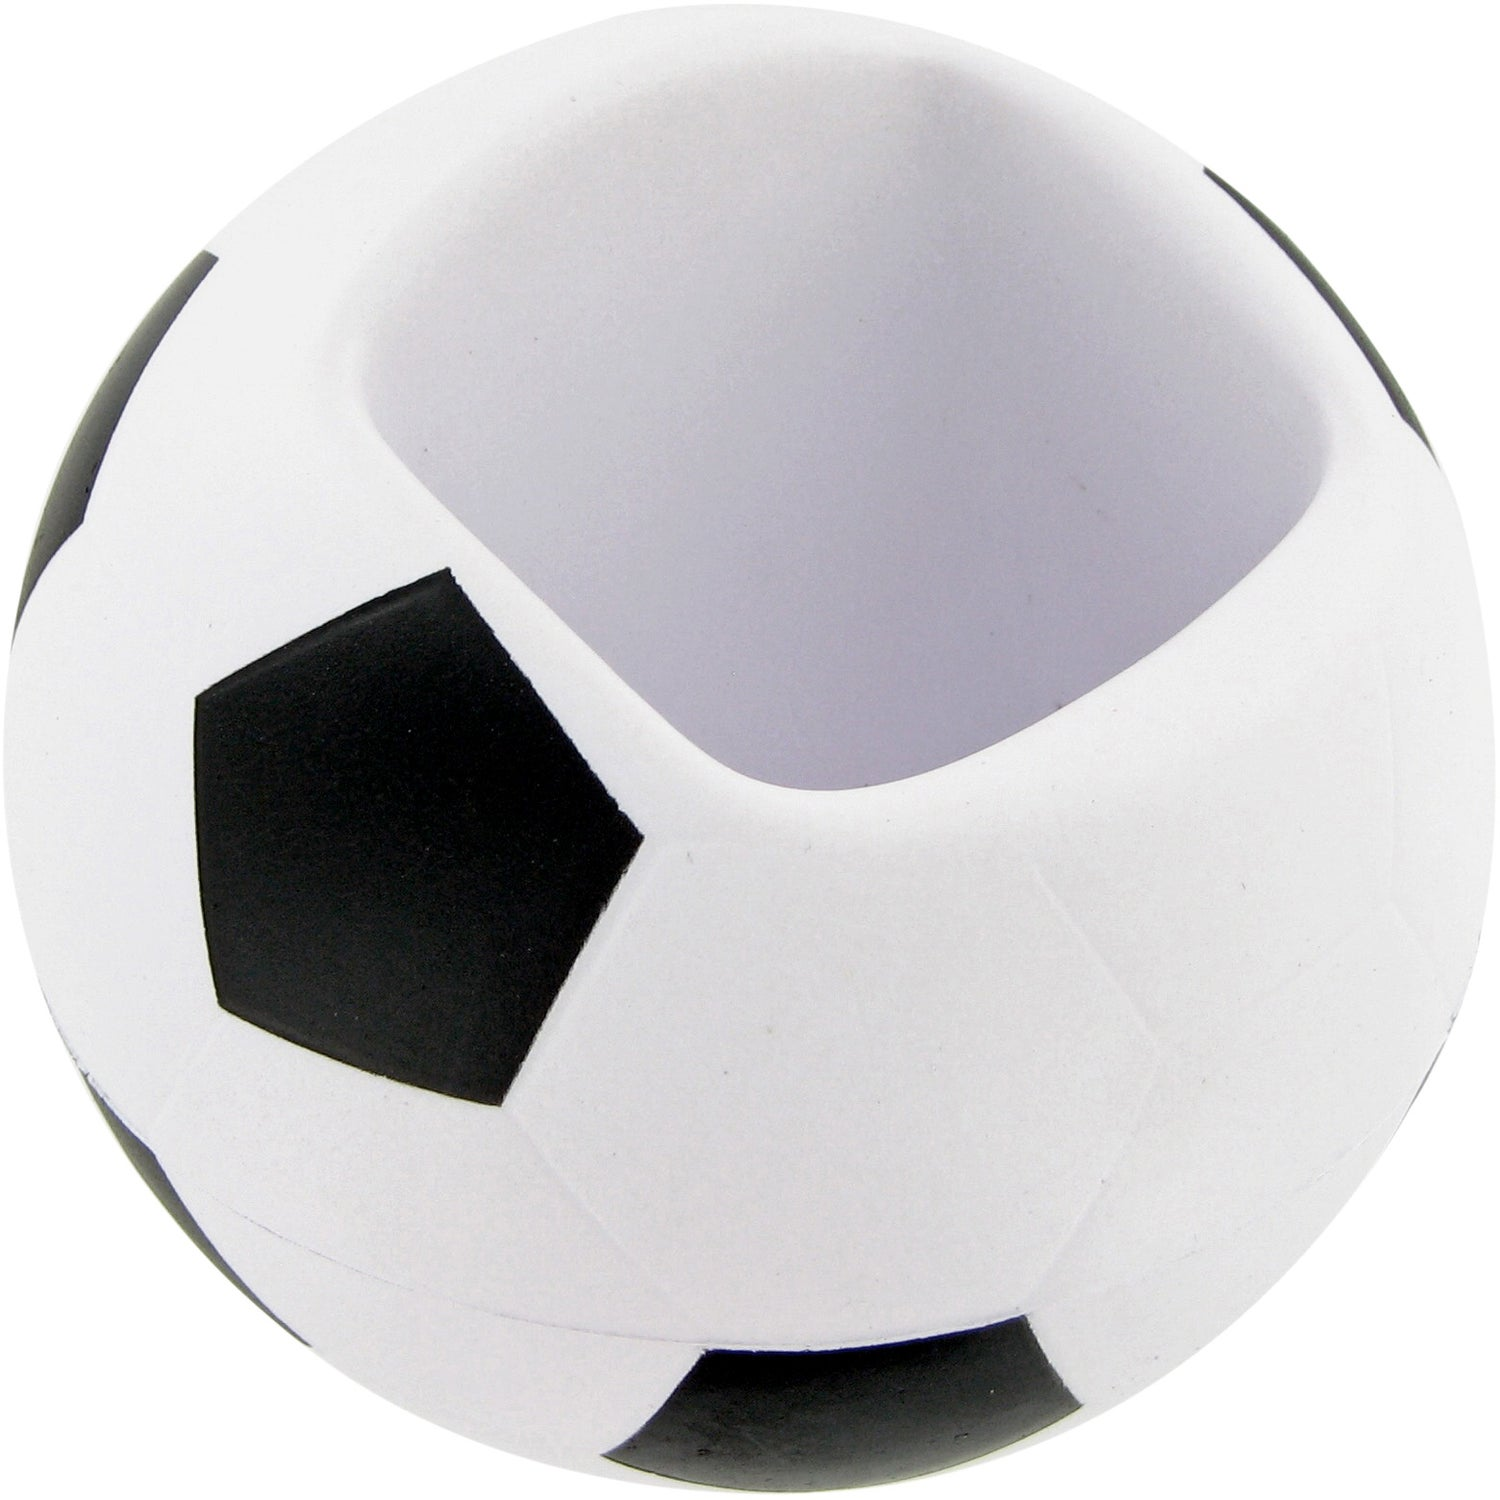 Soccer Ball Cell Phone Holder Stress Toy